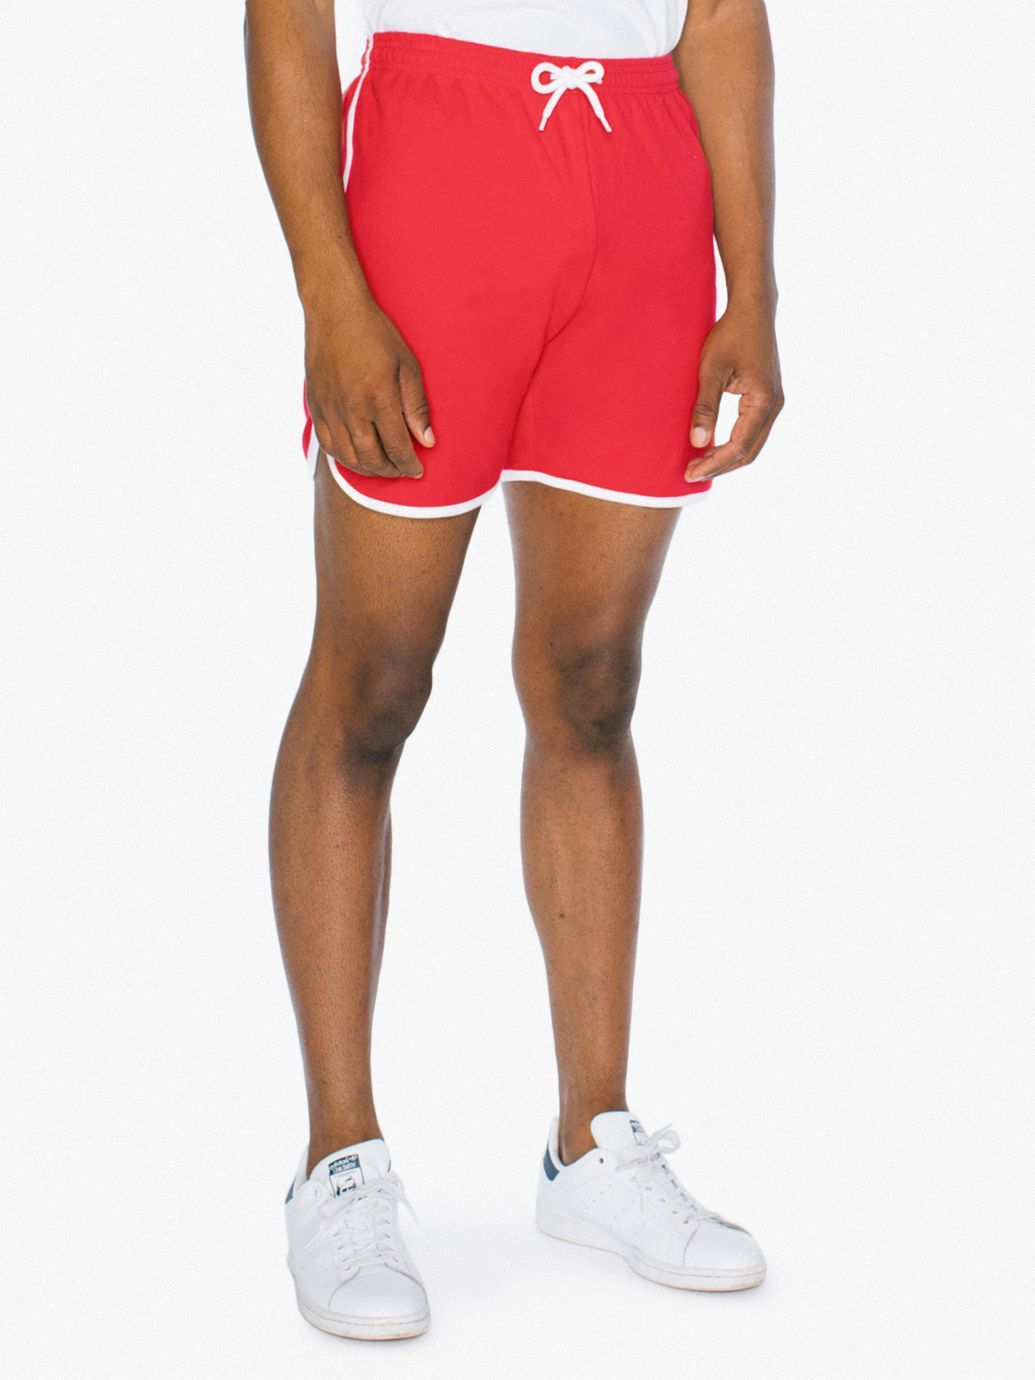 The Interlock Basketball Shorts Are A Modern Take On Classic 70s Running For Men BRBRSPAN